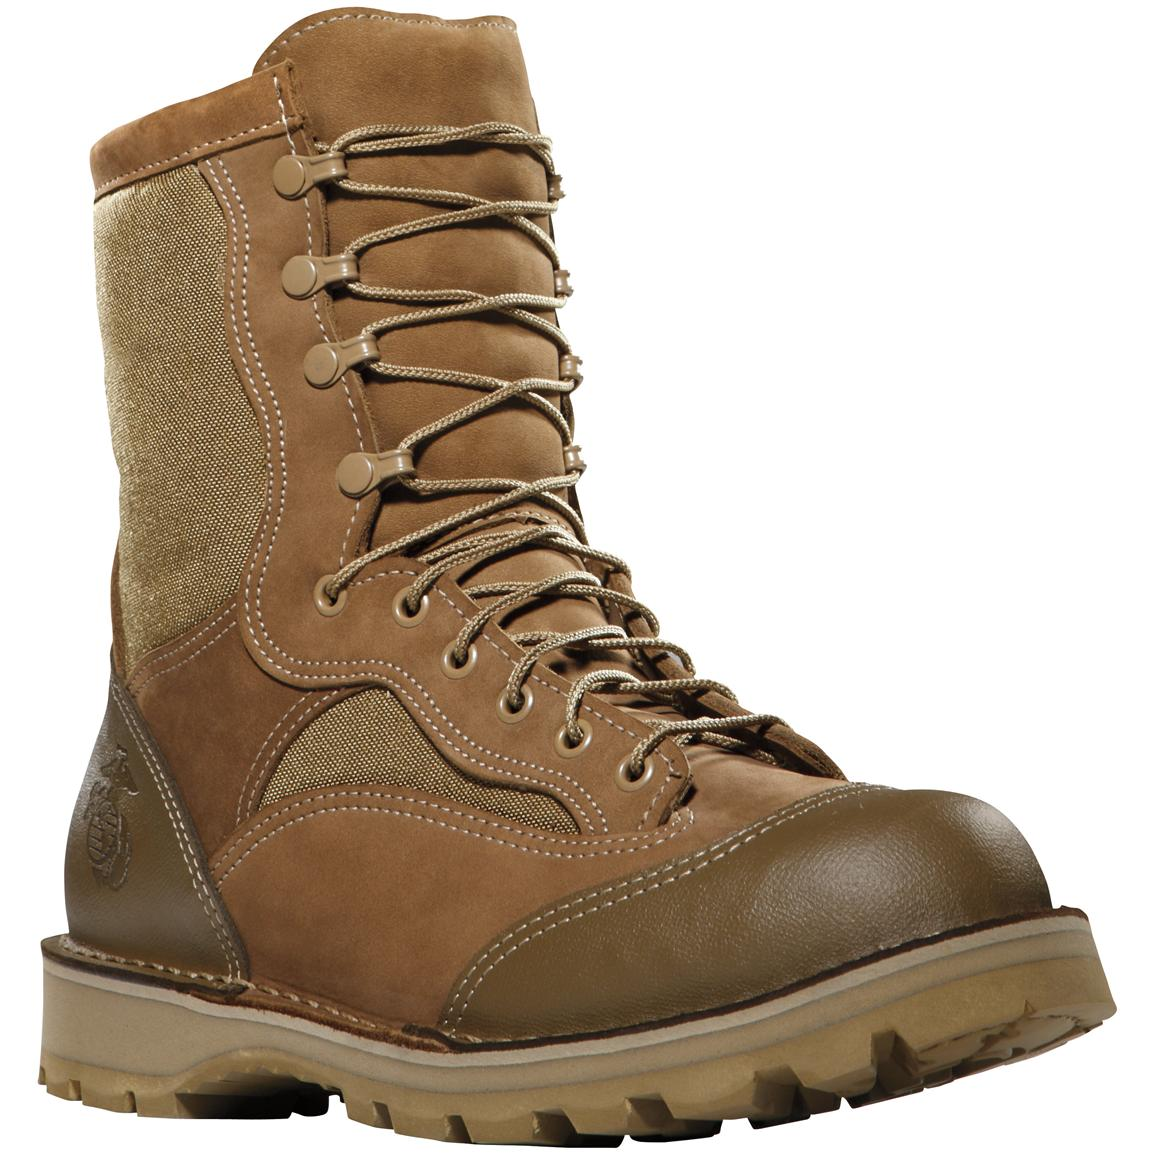 Danner® USMC RAT Hot ST Military Boots, Mojave